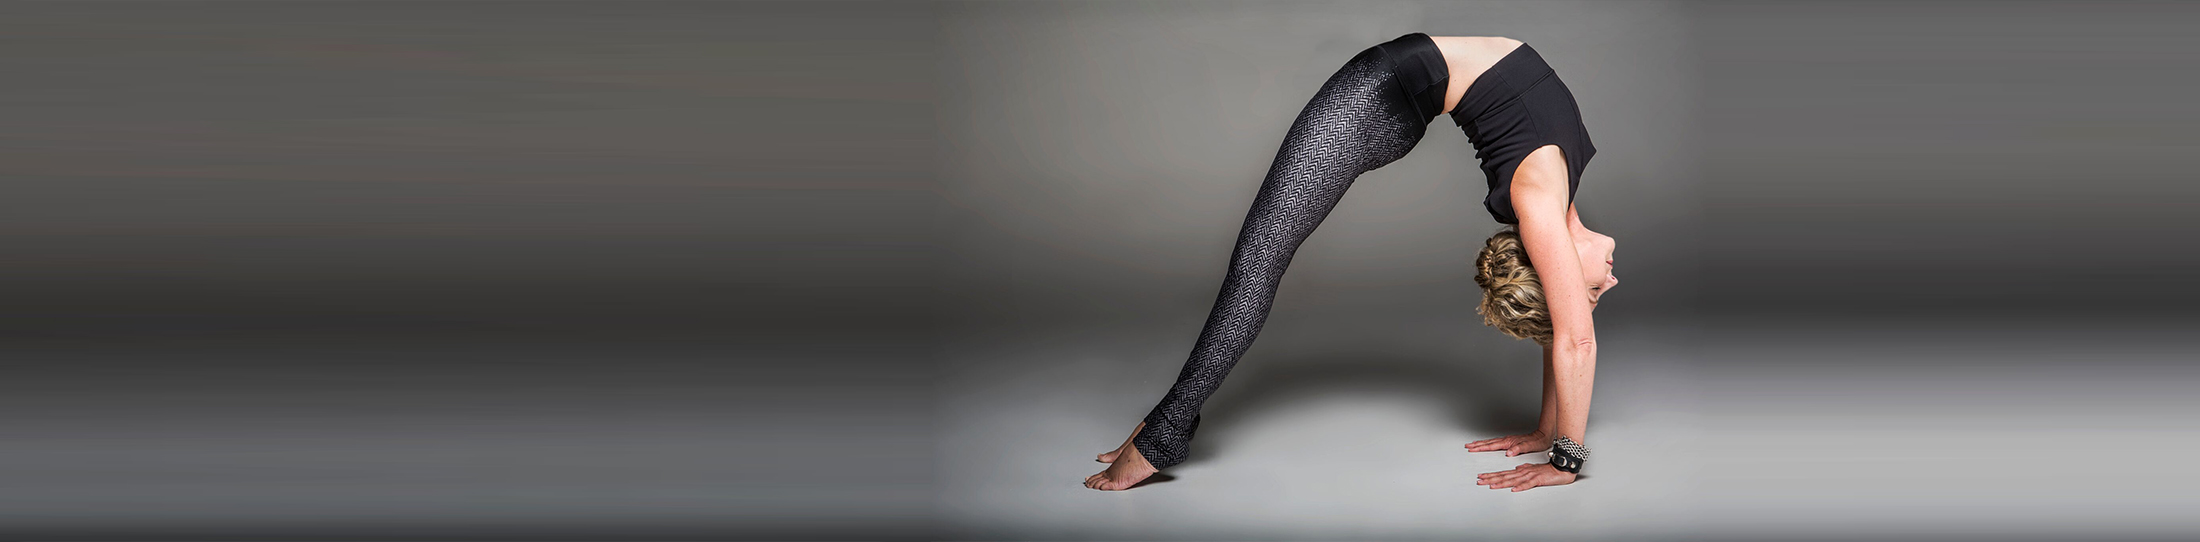 yoga-printed-leggings.jpg